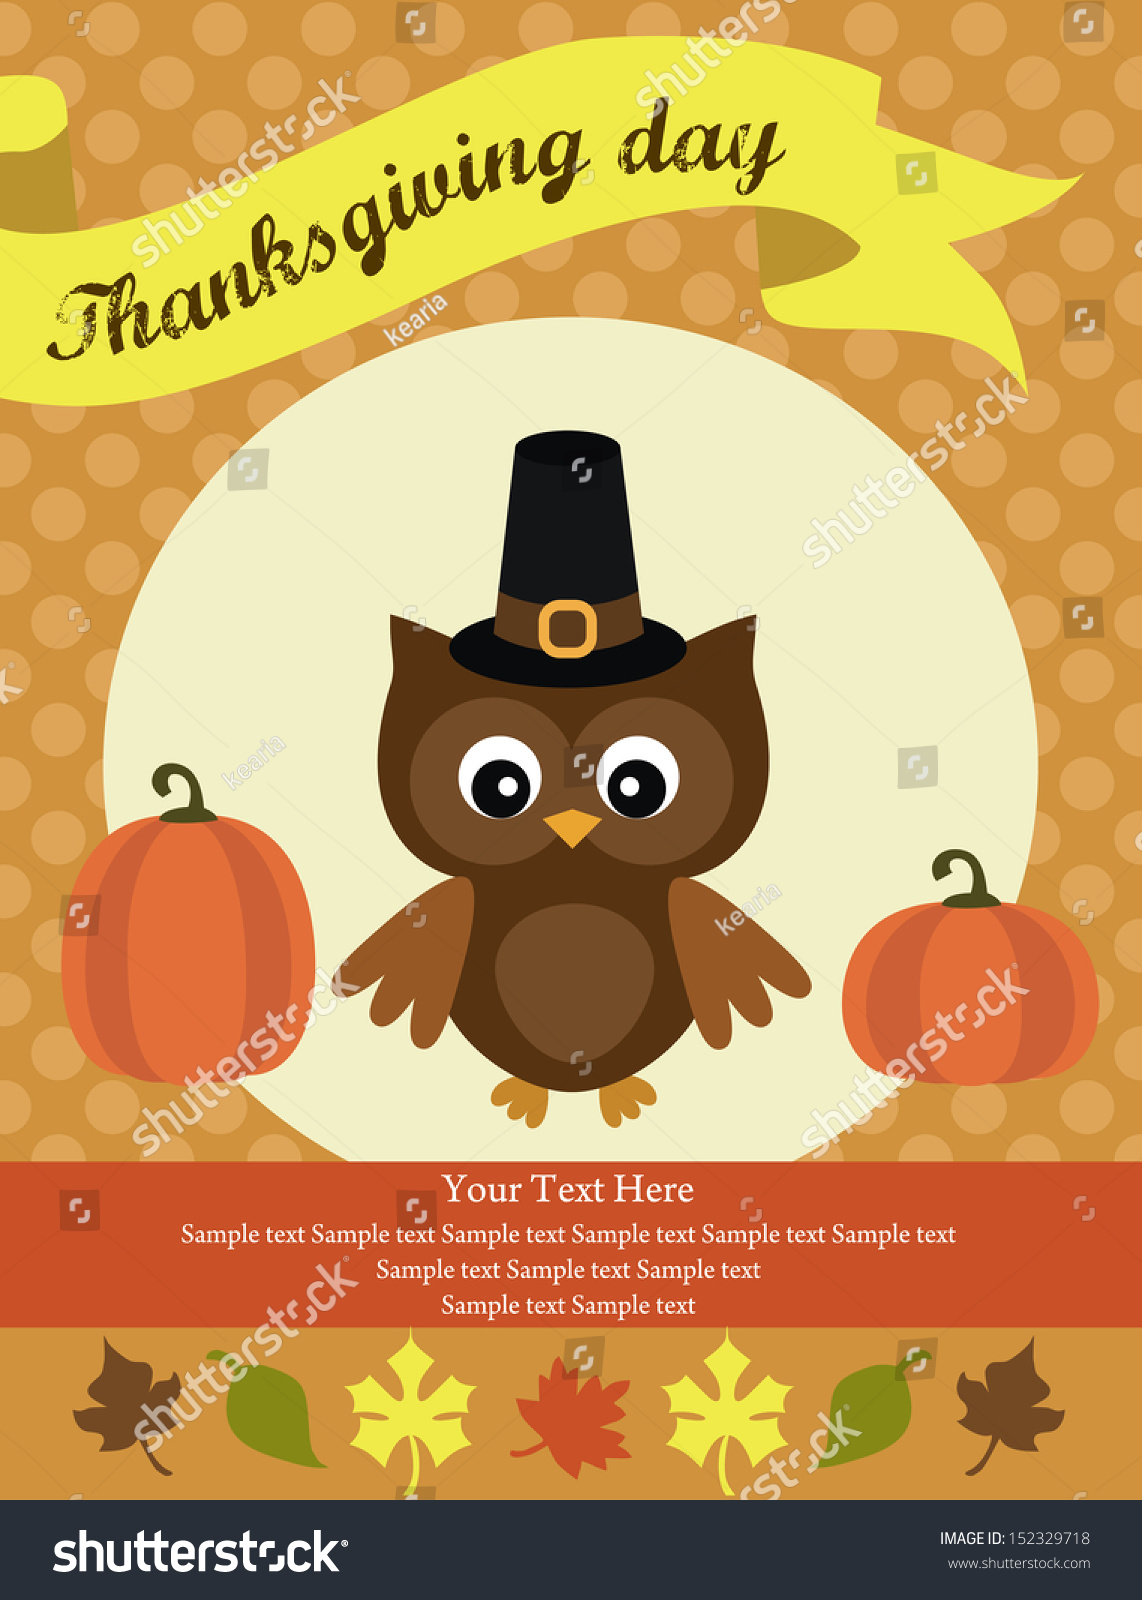 Thanksgiving card design vector illustration stock vector thanksgiving card design vector illustration kristyandbryce Choice Image